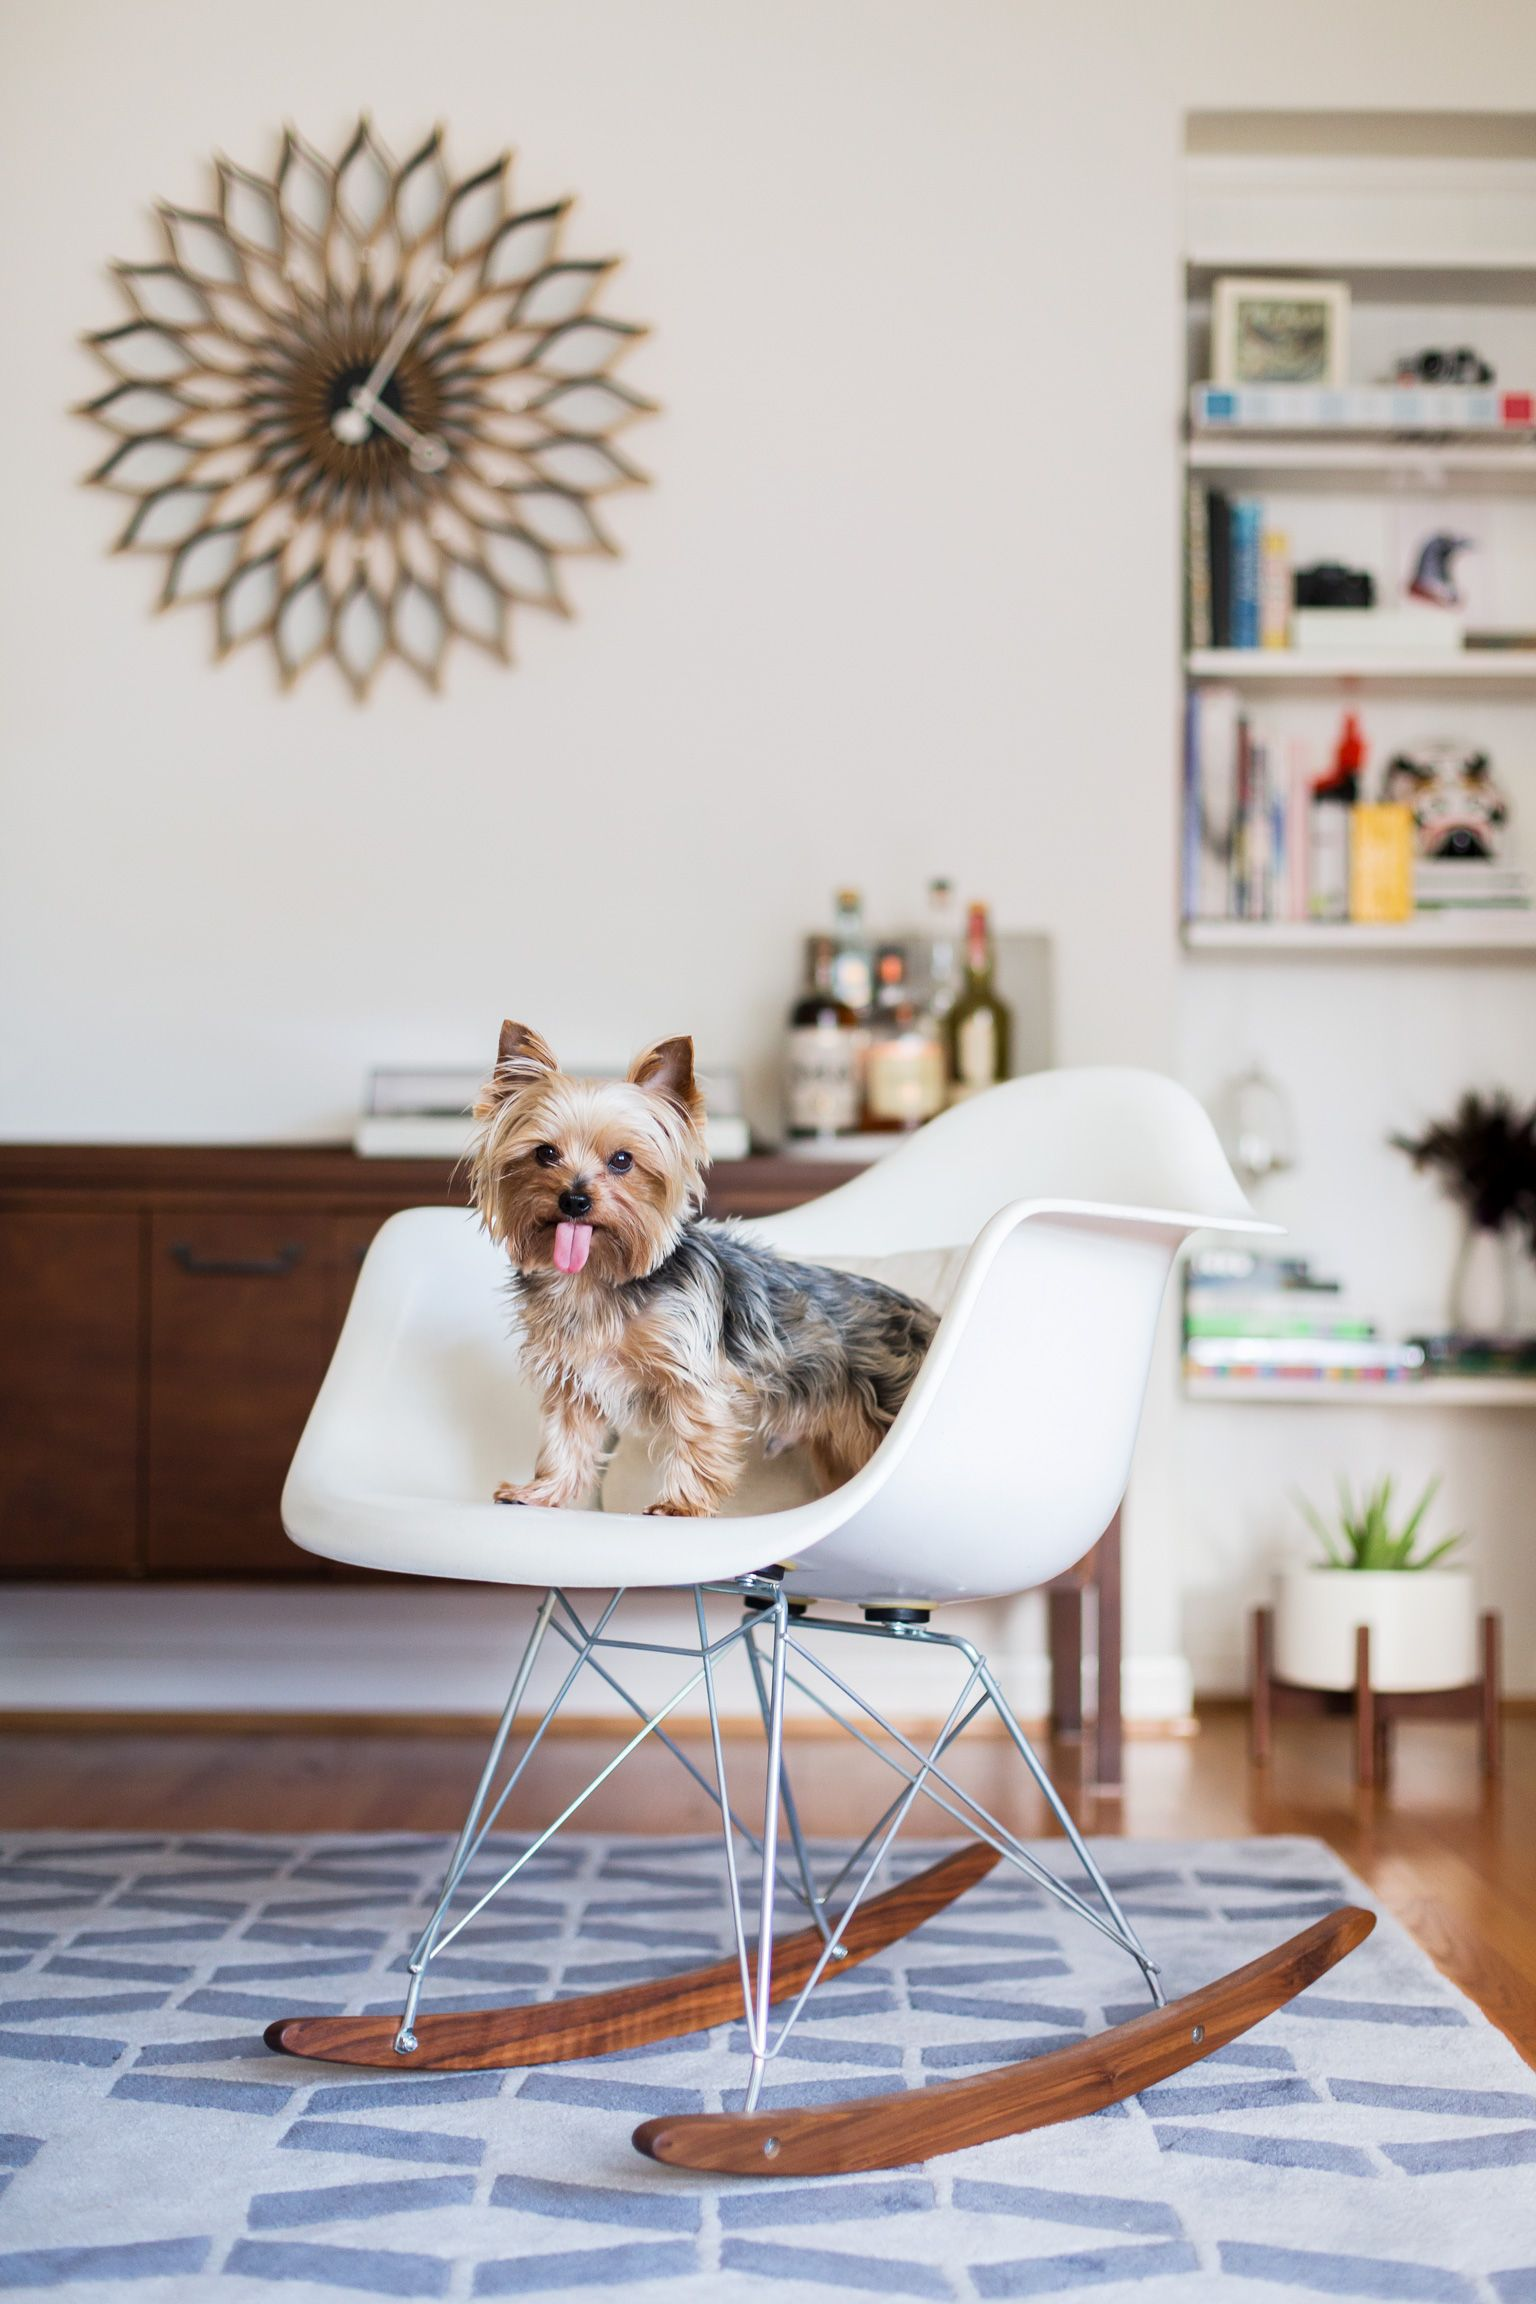 Pets On Furniture Contestant, Stormy The Yorkie, On A Fiberglass Rocker  Chair